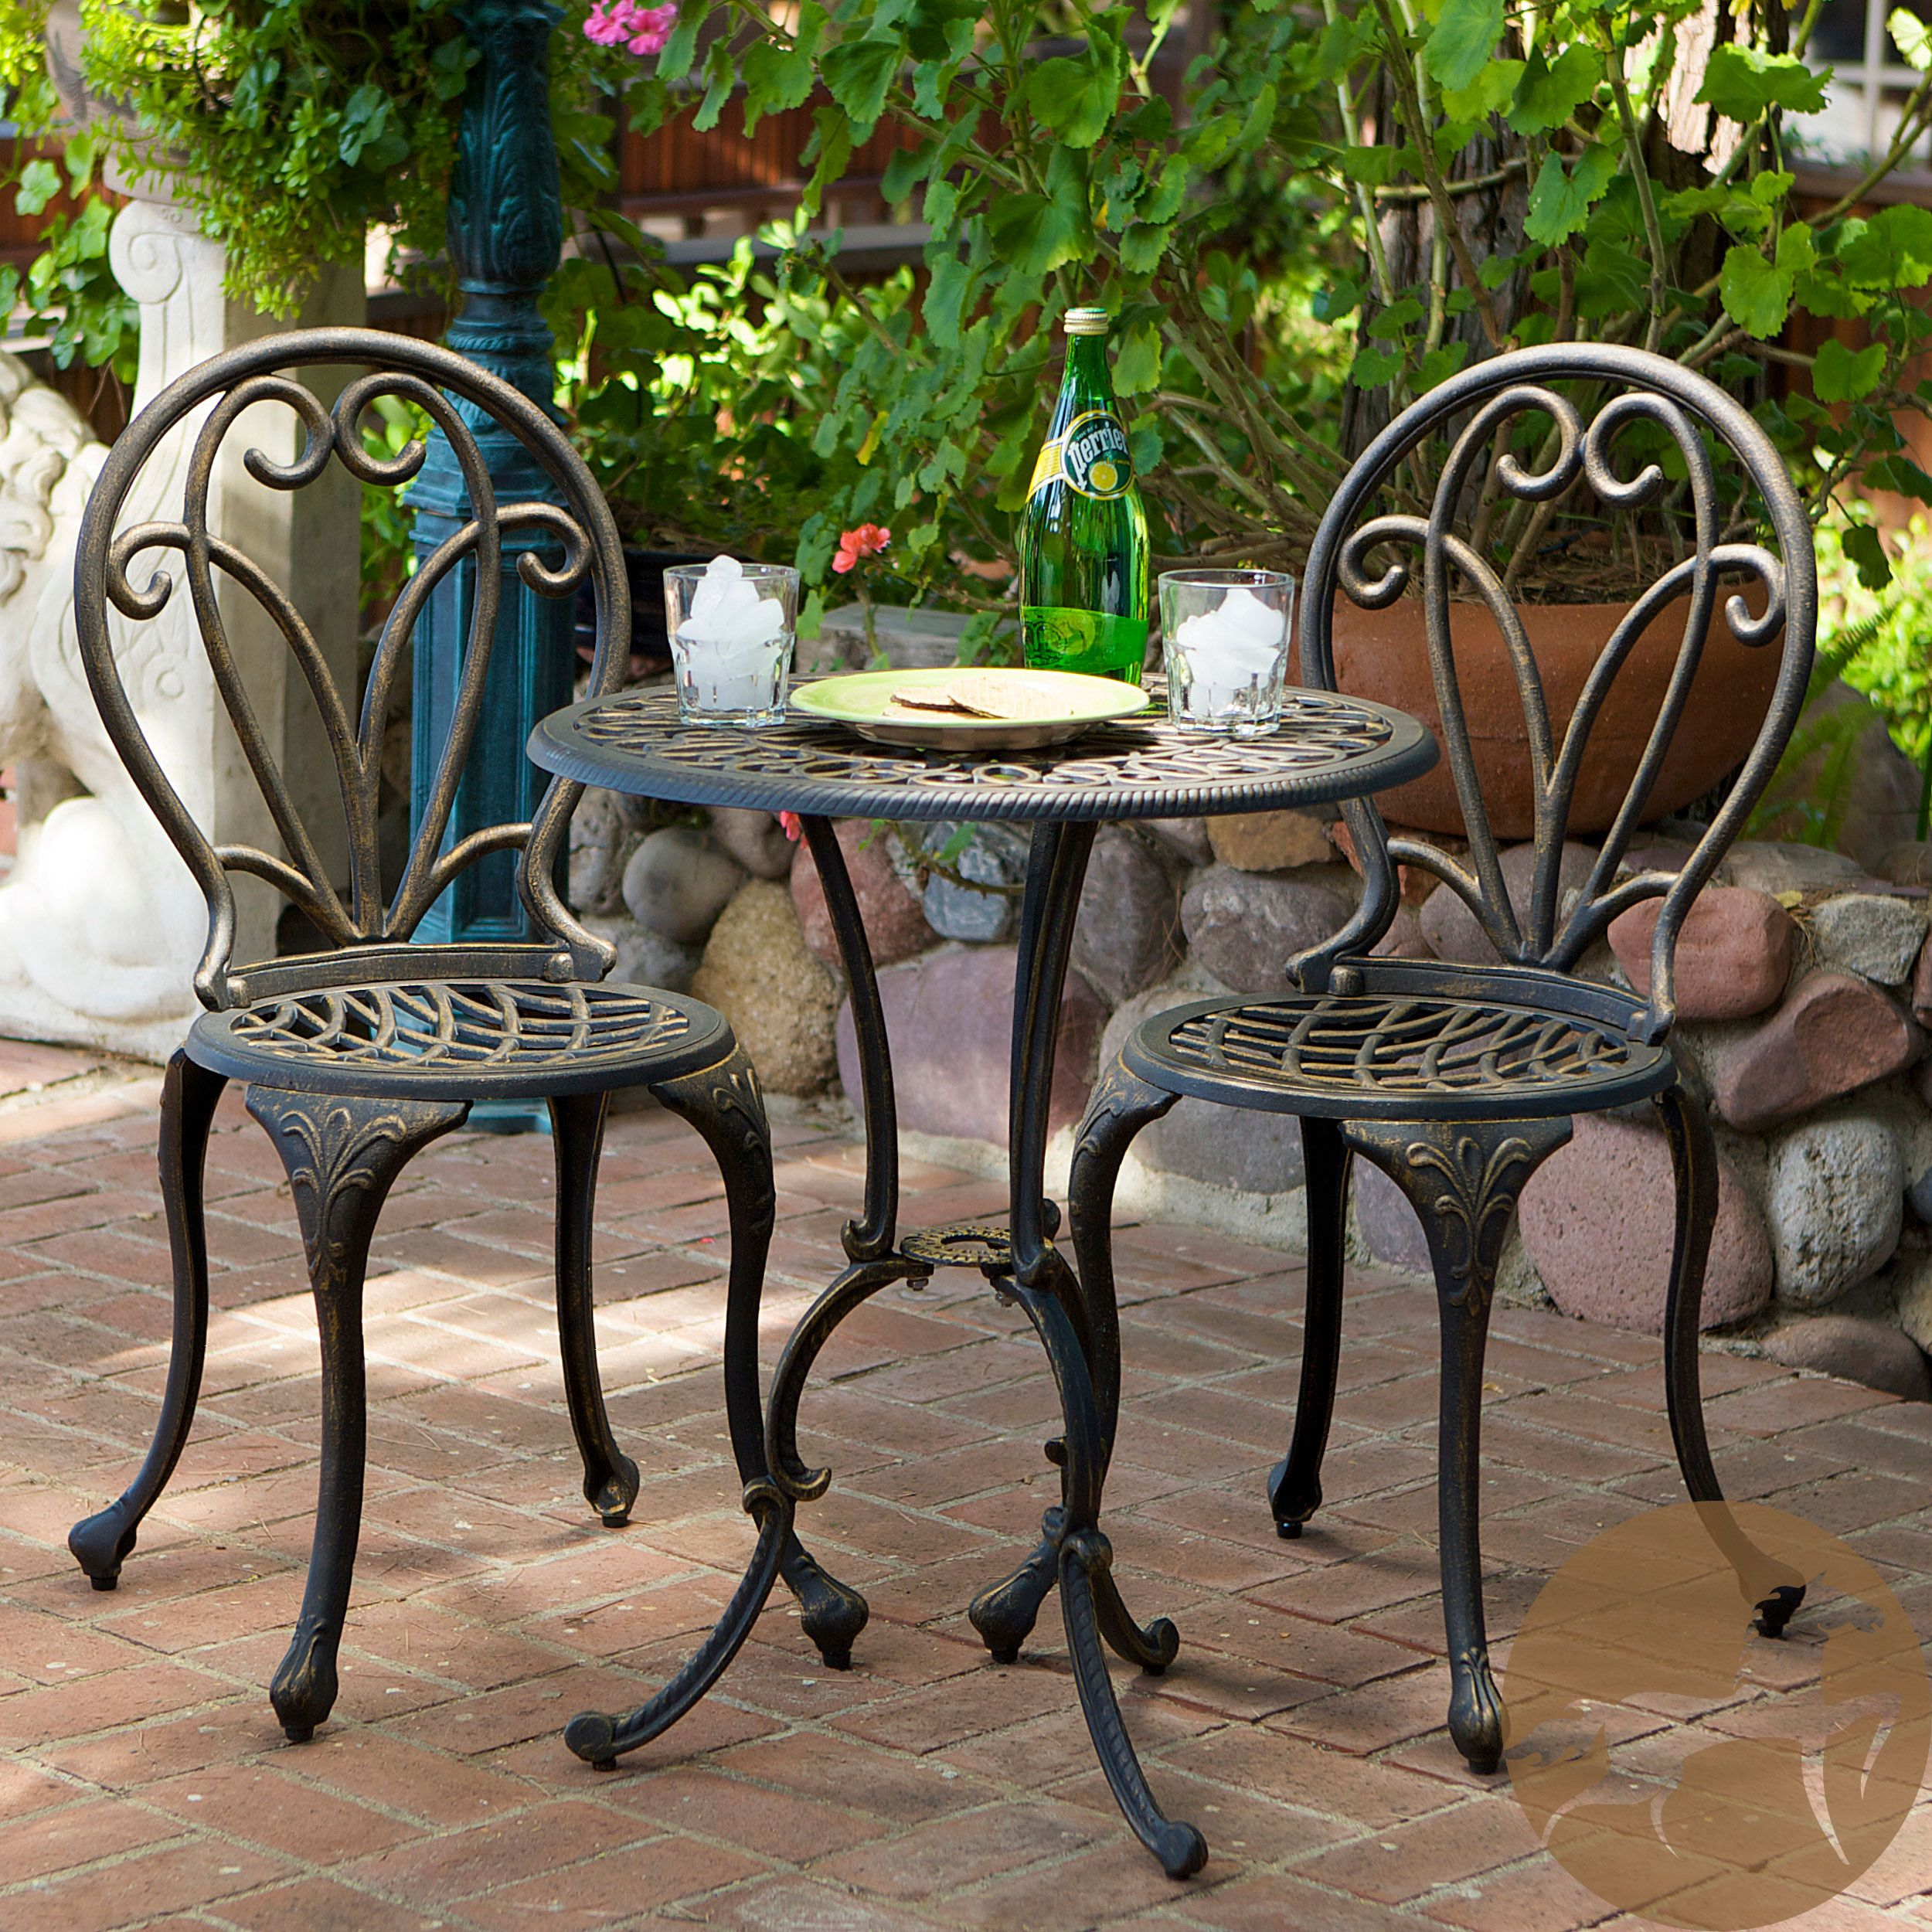 this french style outdoor bistro set will lend classy style to your rh pinterest com french style garden furniture ebay french style outdoor furniture melbourne